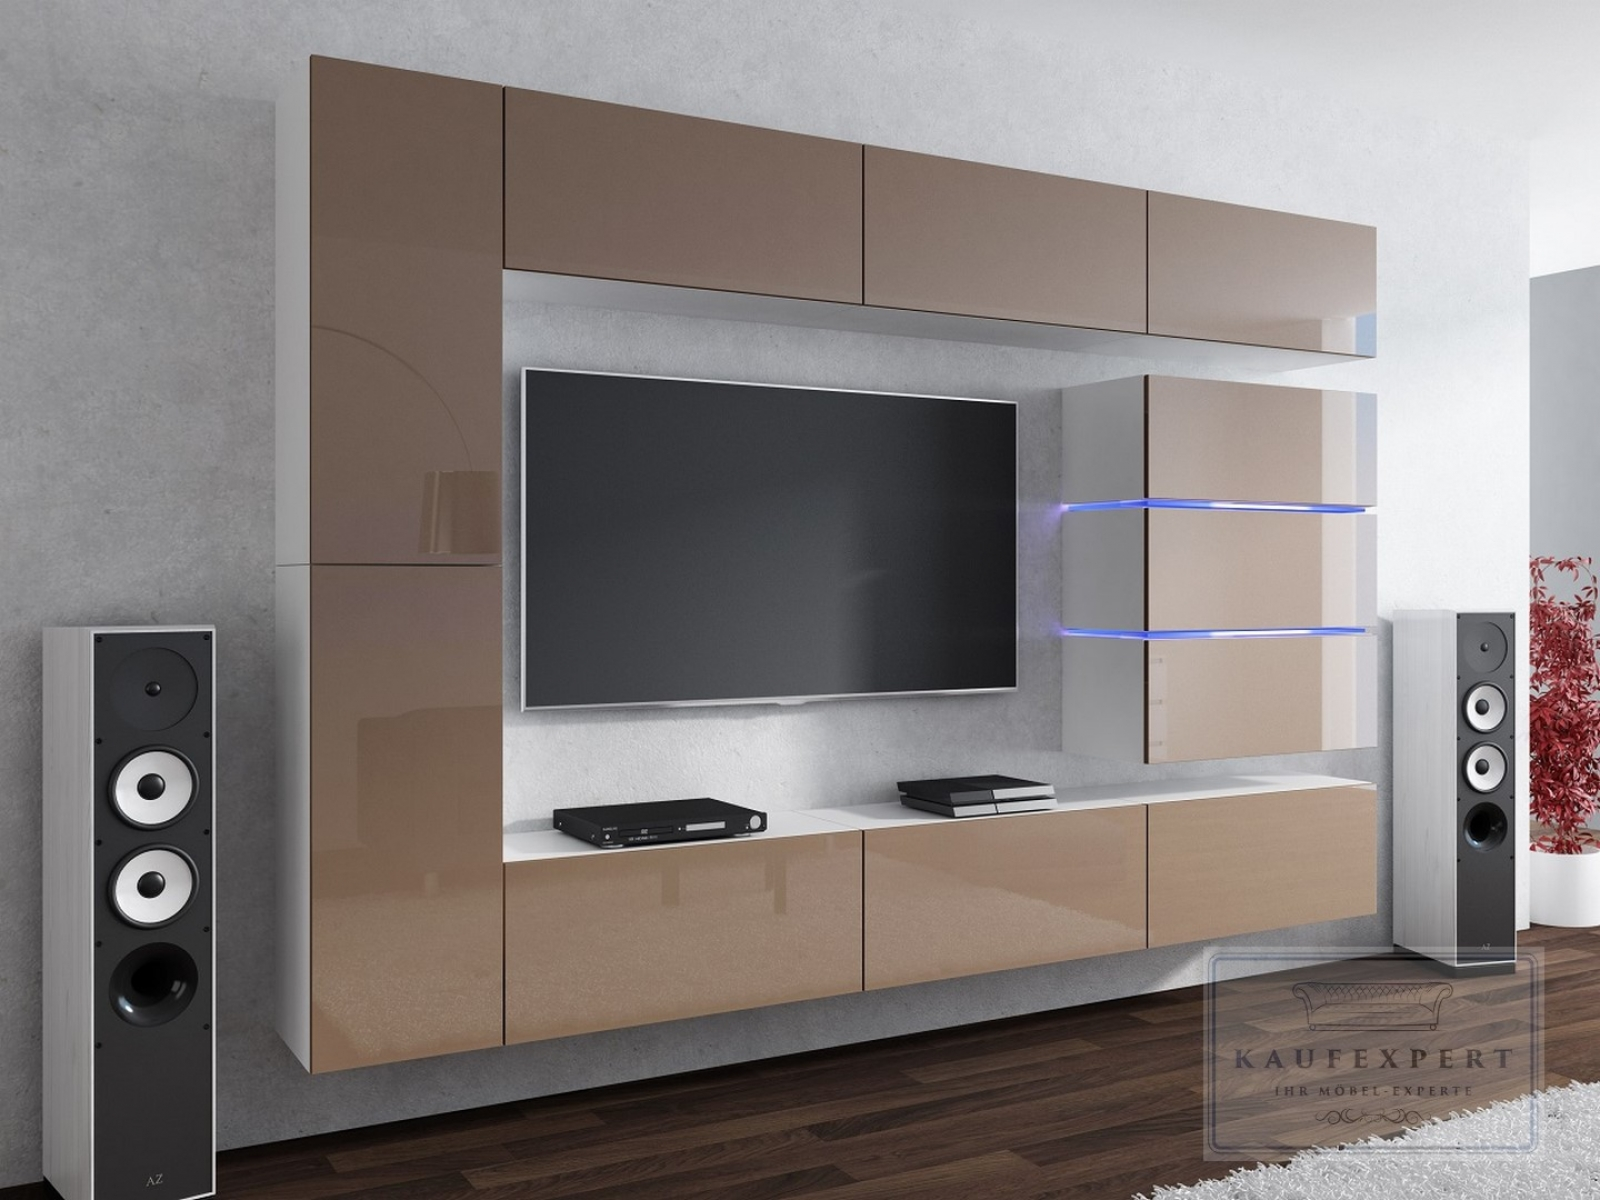 kaufexpert wohnwand shine cappuccino hochglanz wei 284 cm mediawand medienwand design modern. Black Bedroom Furniture Sets. Home Design Ideas